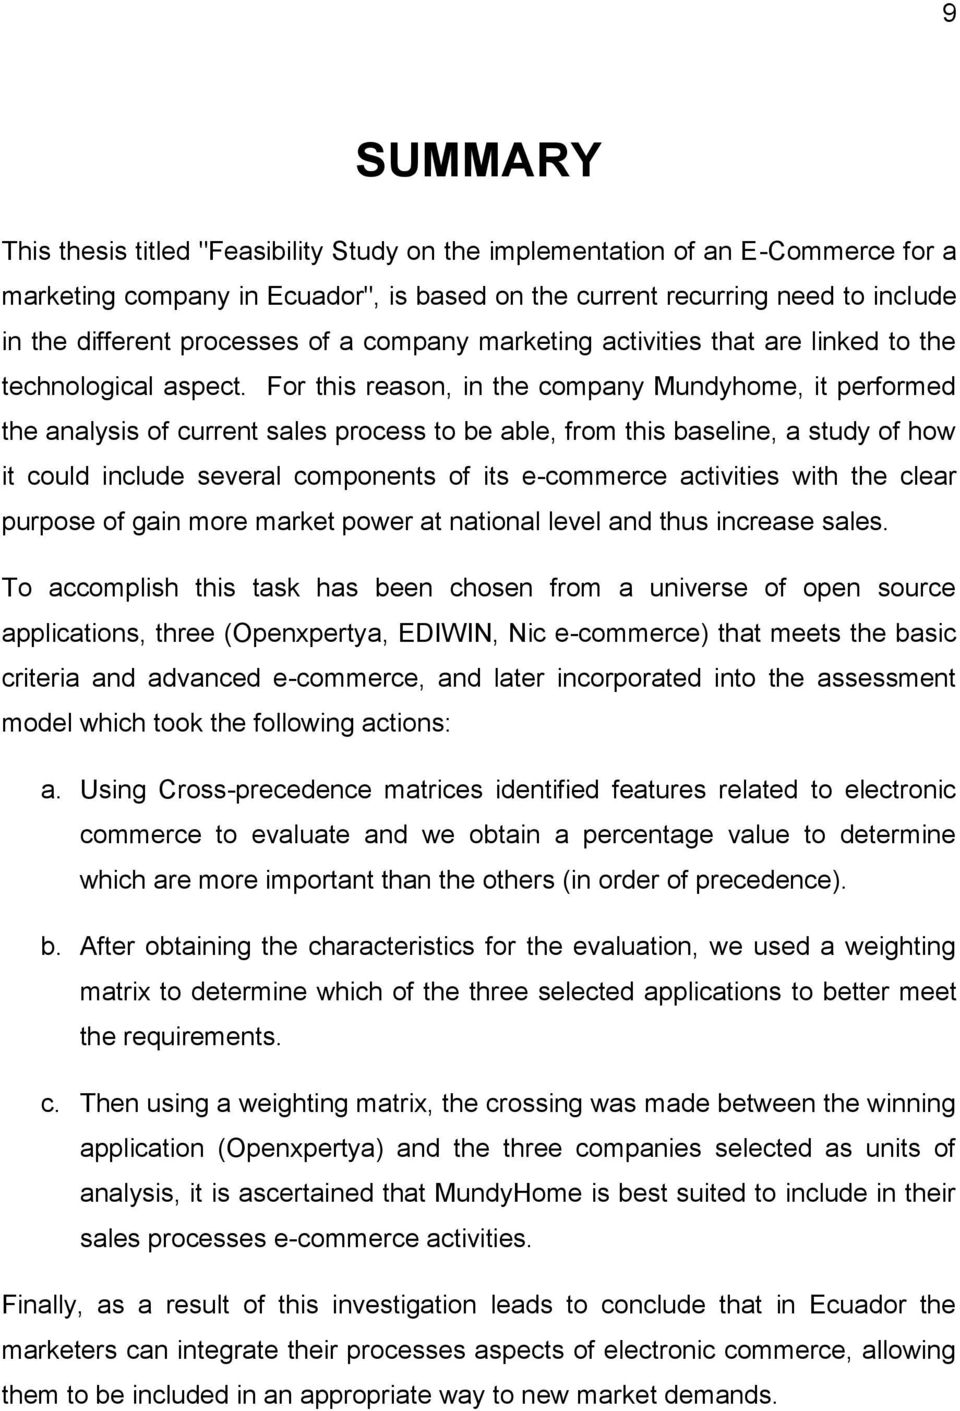 For this reason, in the company Mundyhome, it performed the analysis of current sales process to be able, from this baseline, a study of how it could include several components of its e-commerce